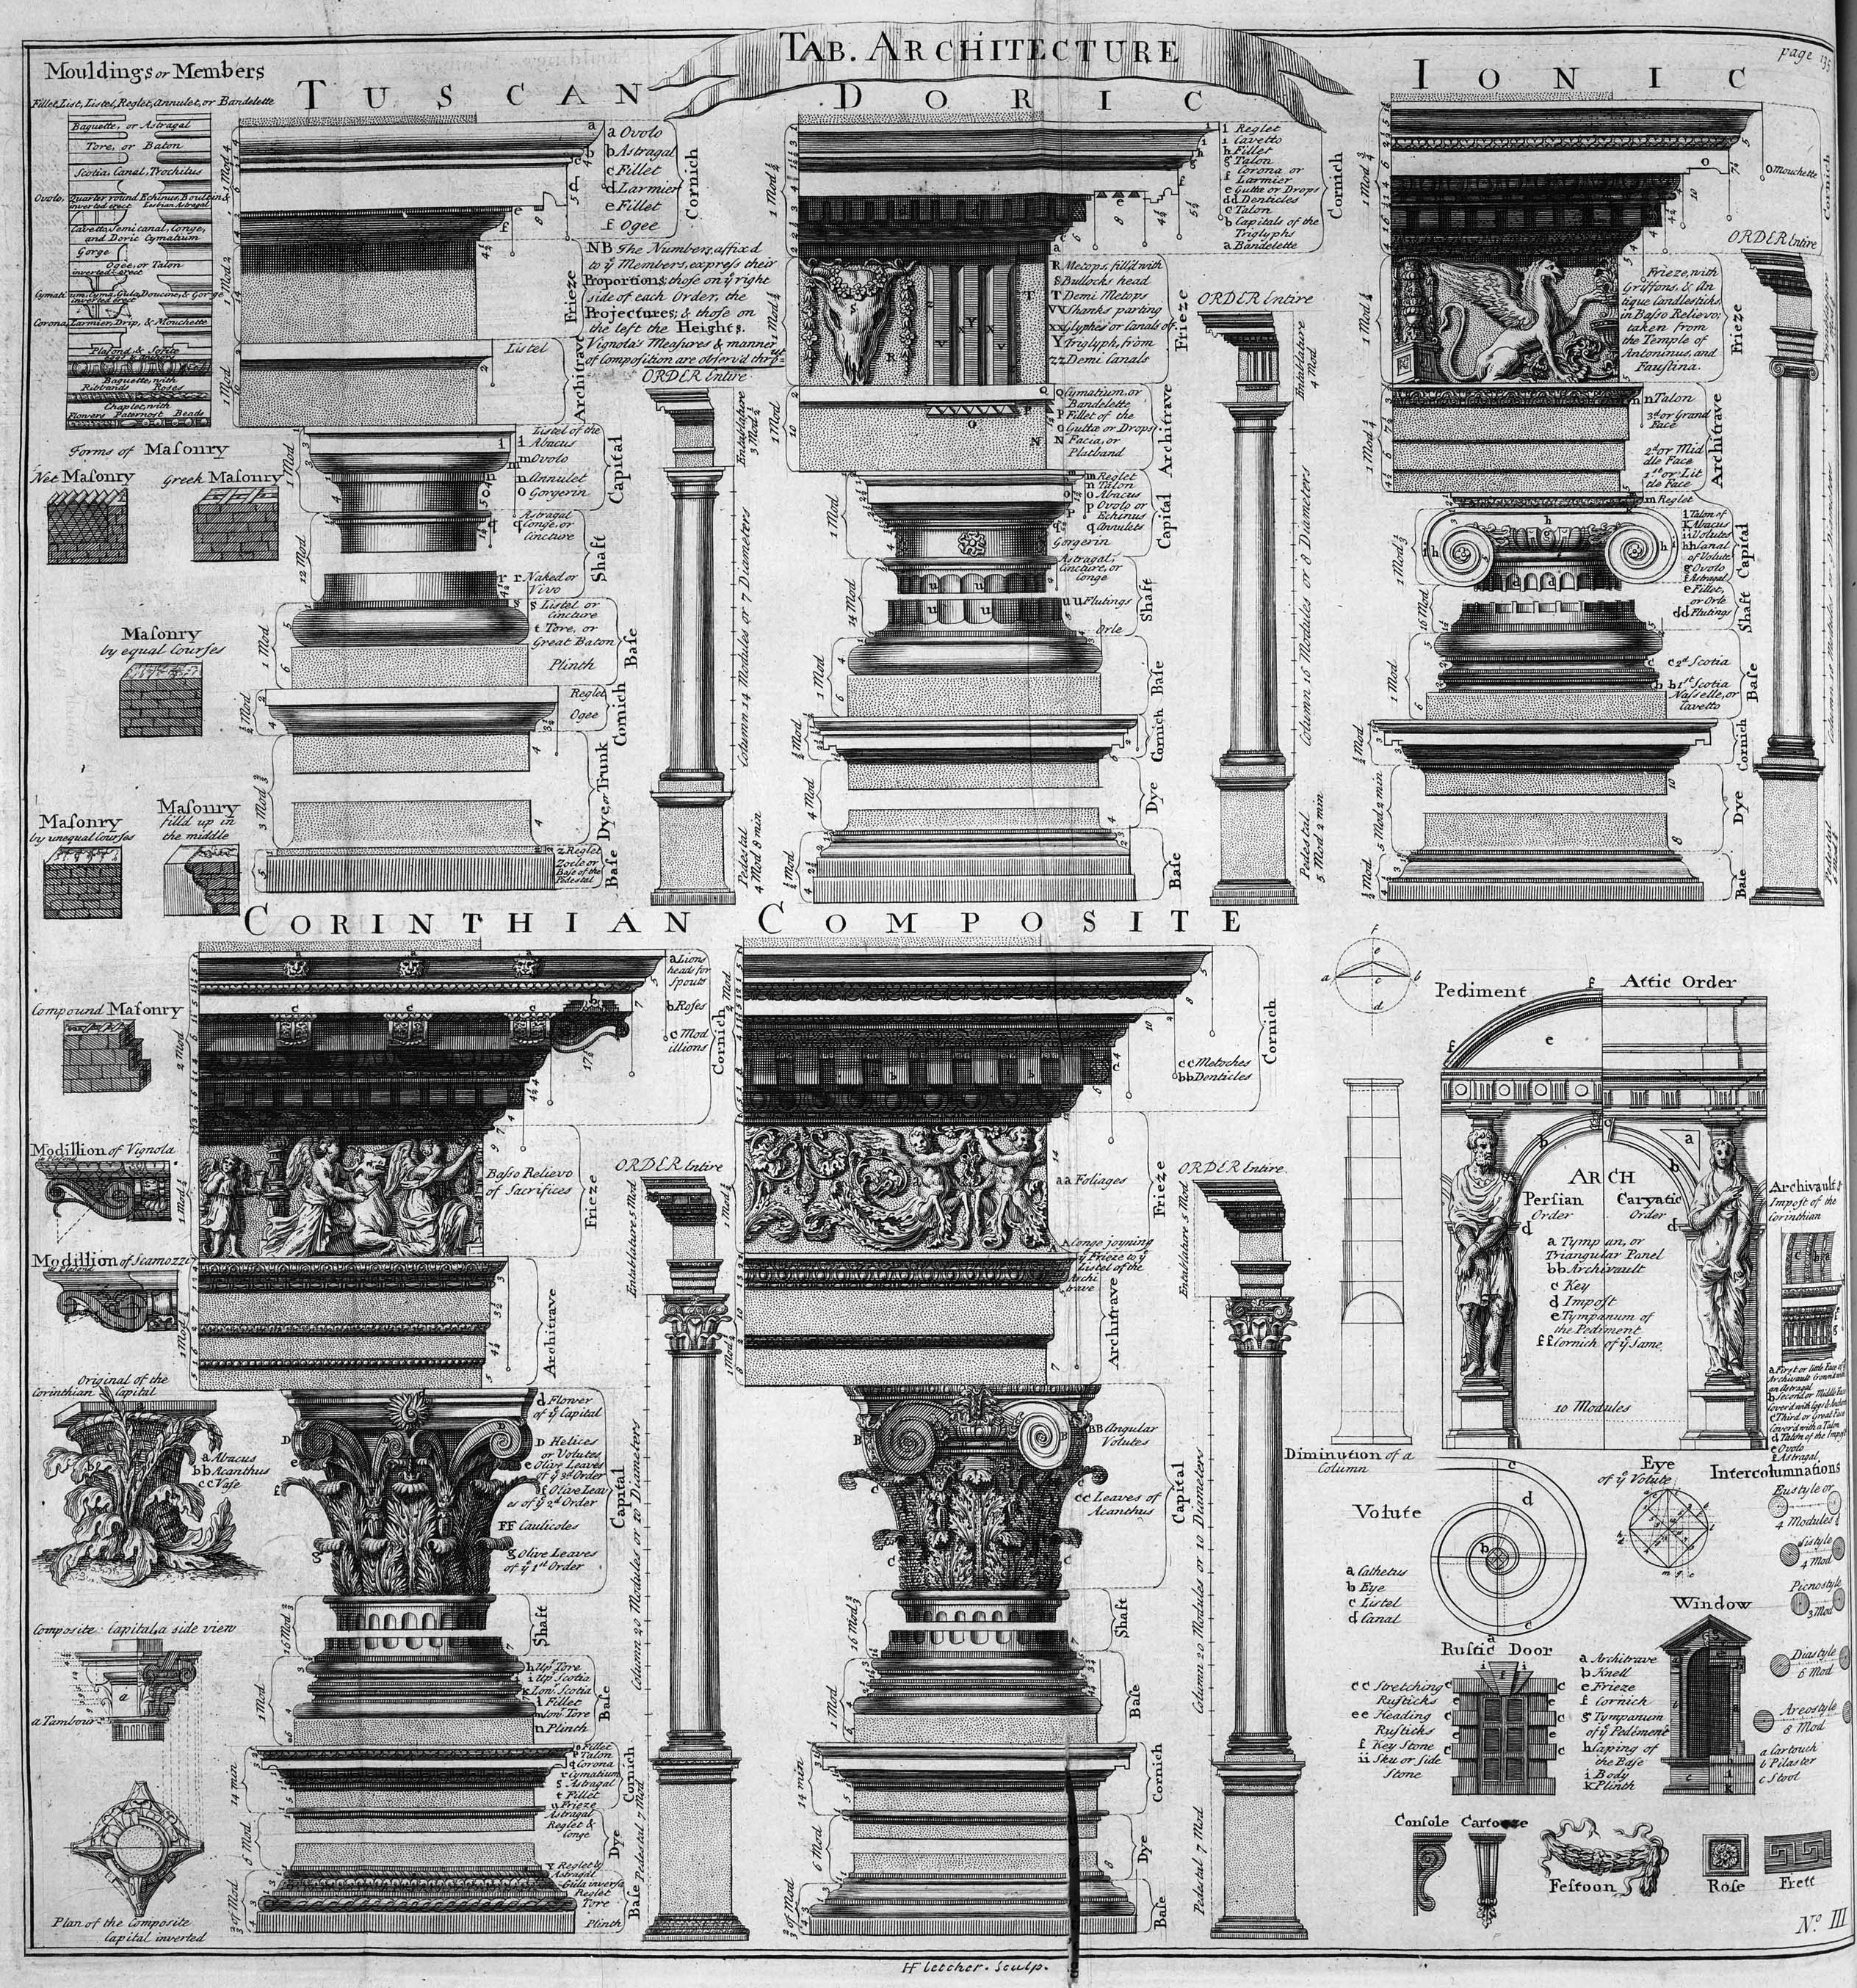 Table Of Architecture Cyclopaedia 1728